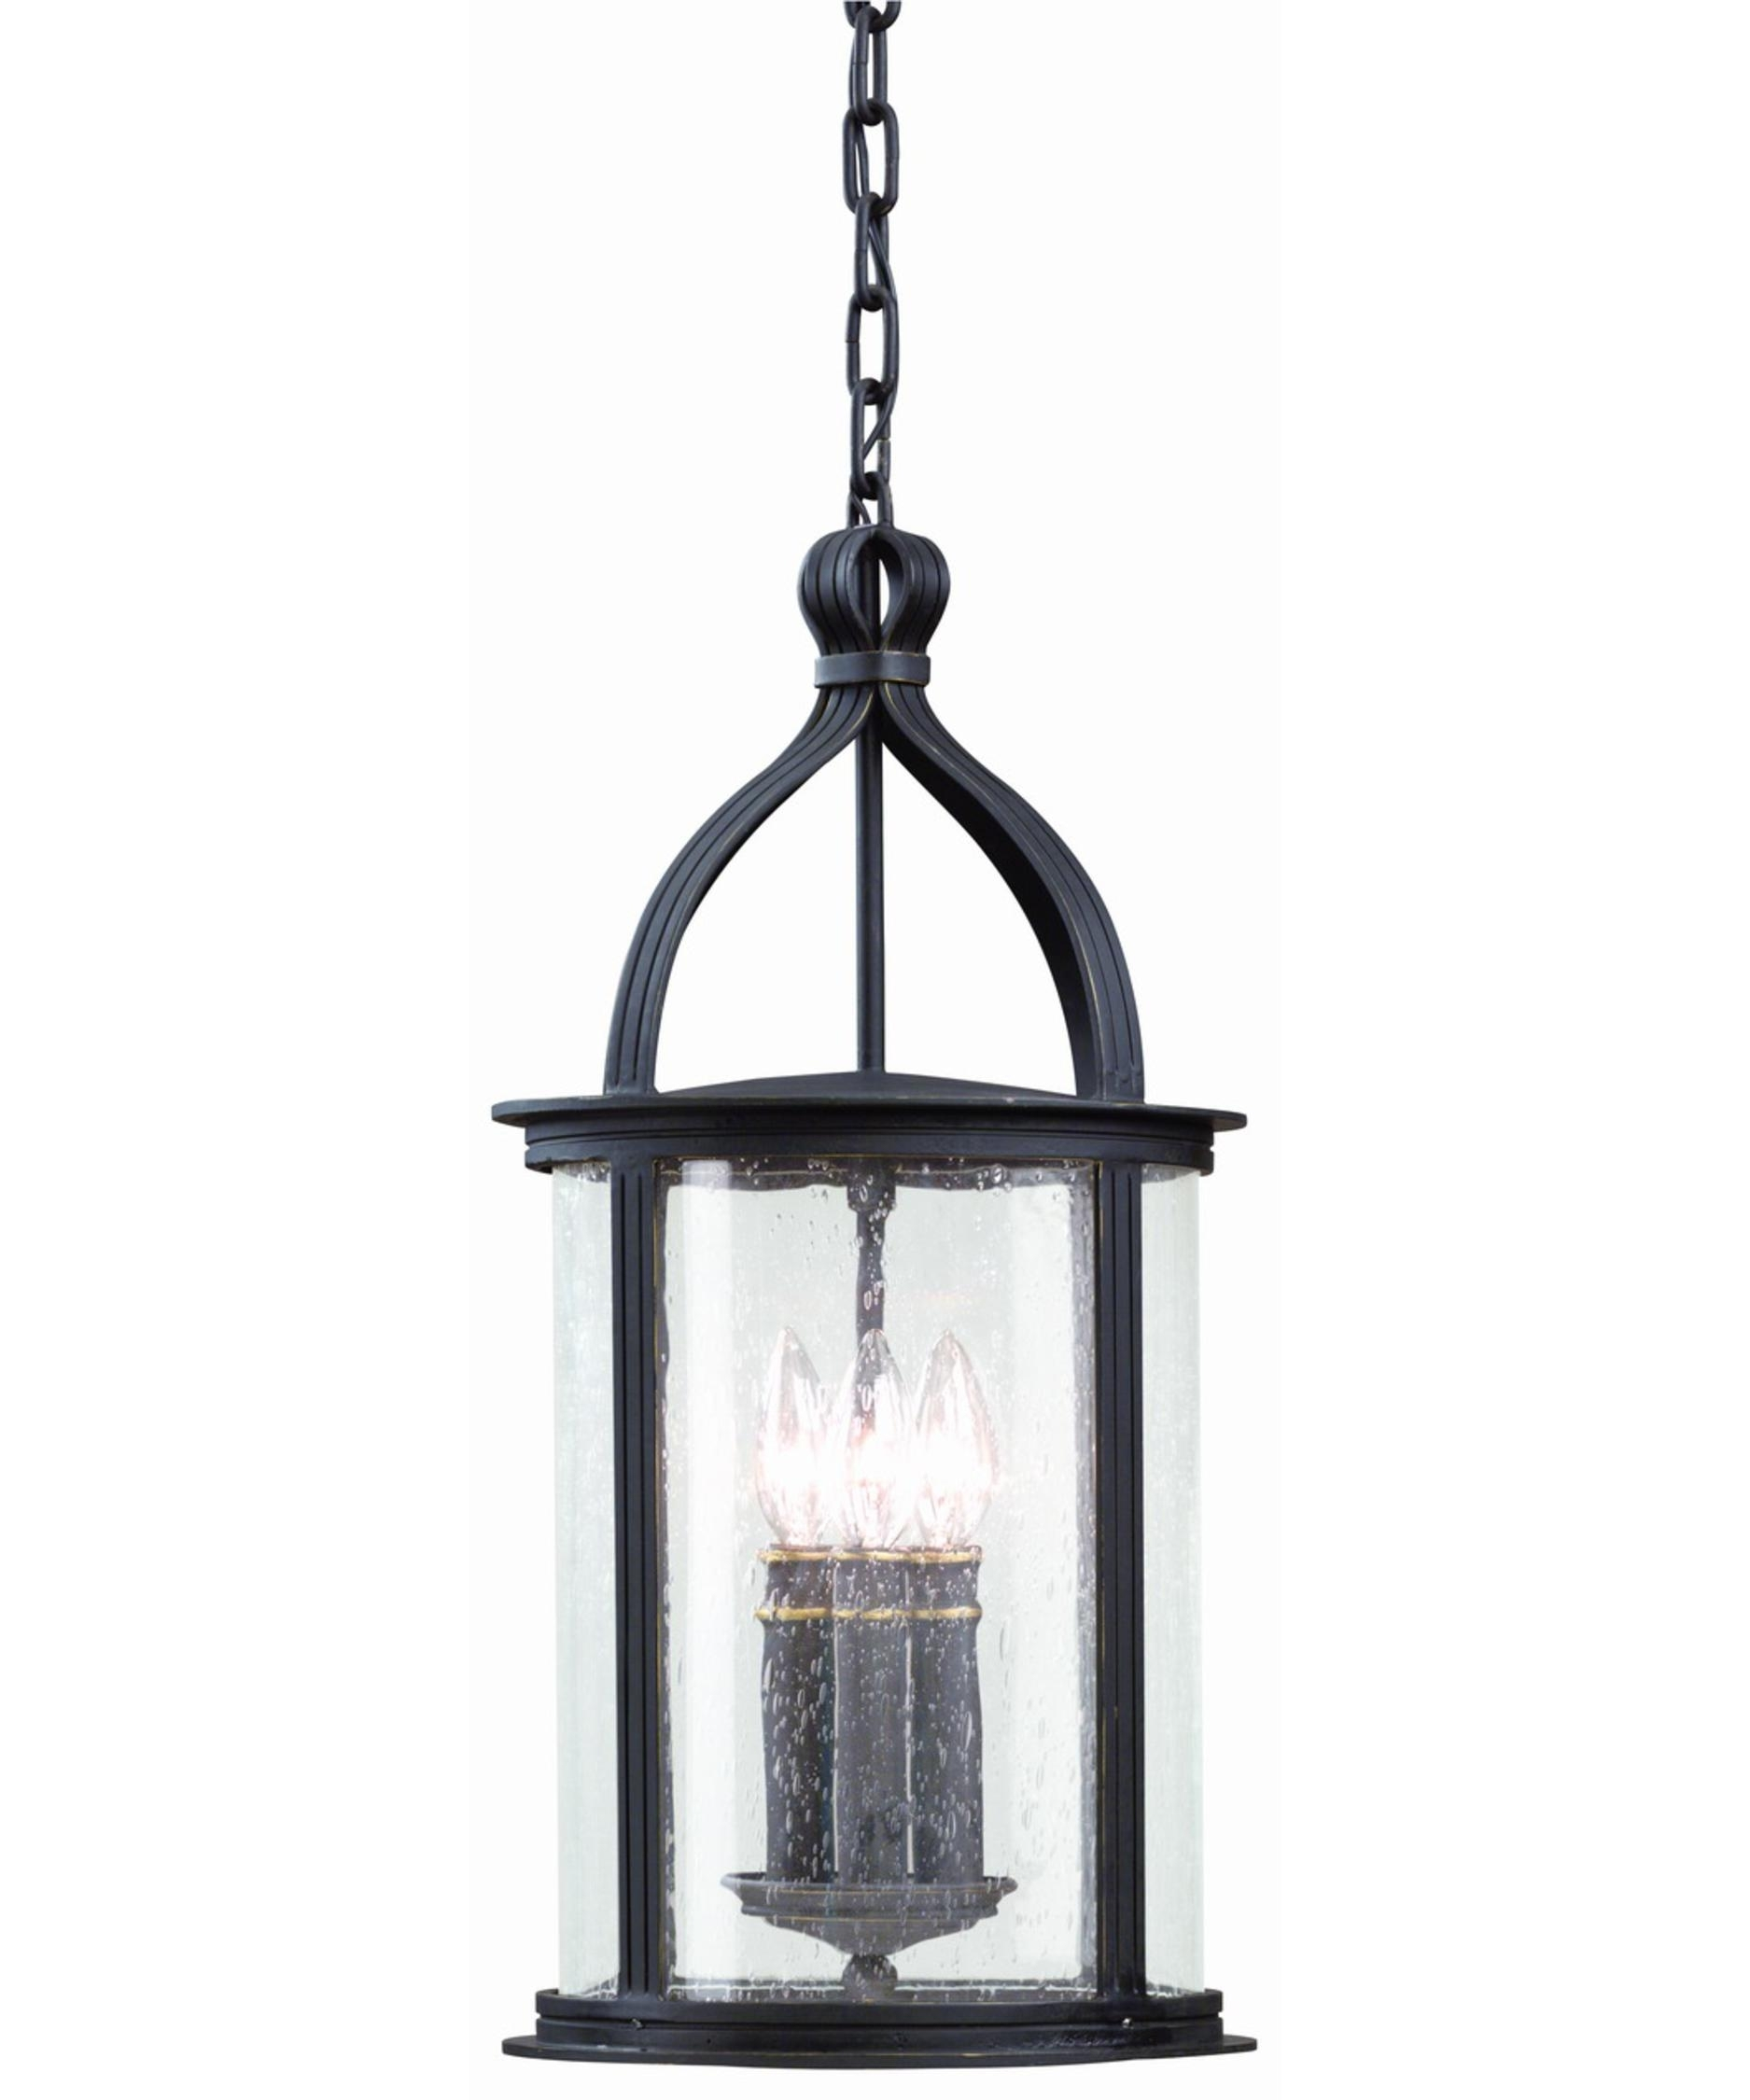 Troy Lighting F9476 Scarsdale 10 Inch Wide 3 Light Outdoor Hanging Throughout Outdoor Iron Hanging Lights (#10 of 10)